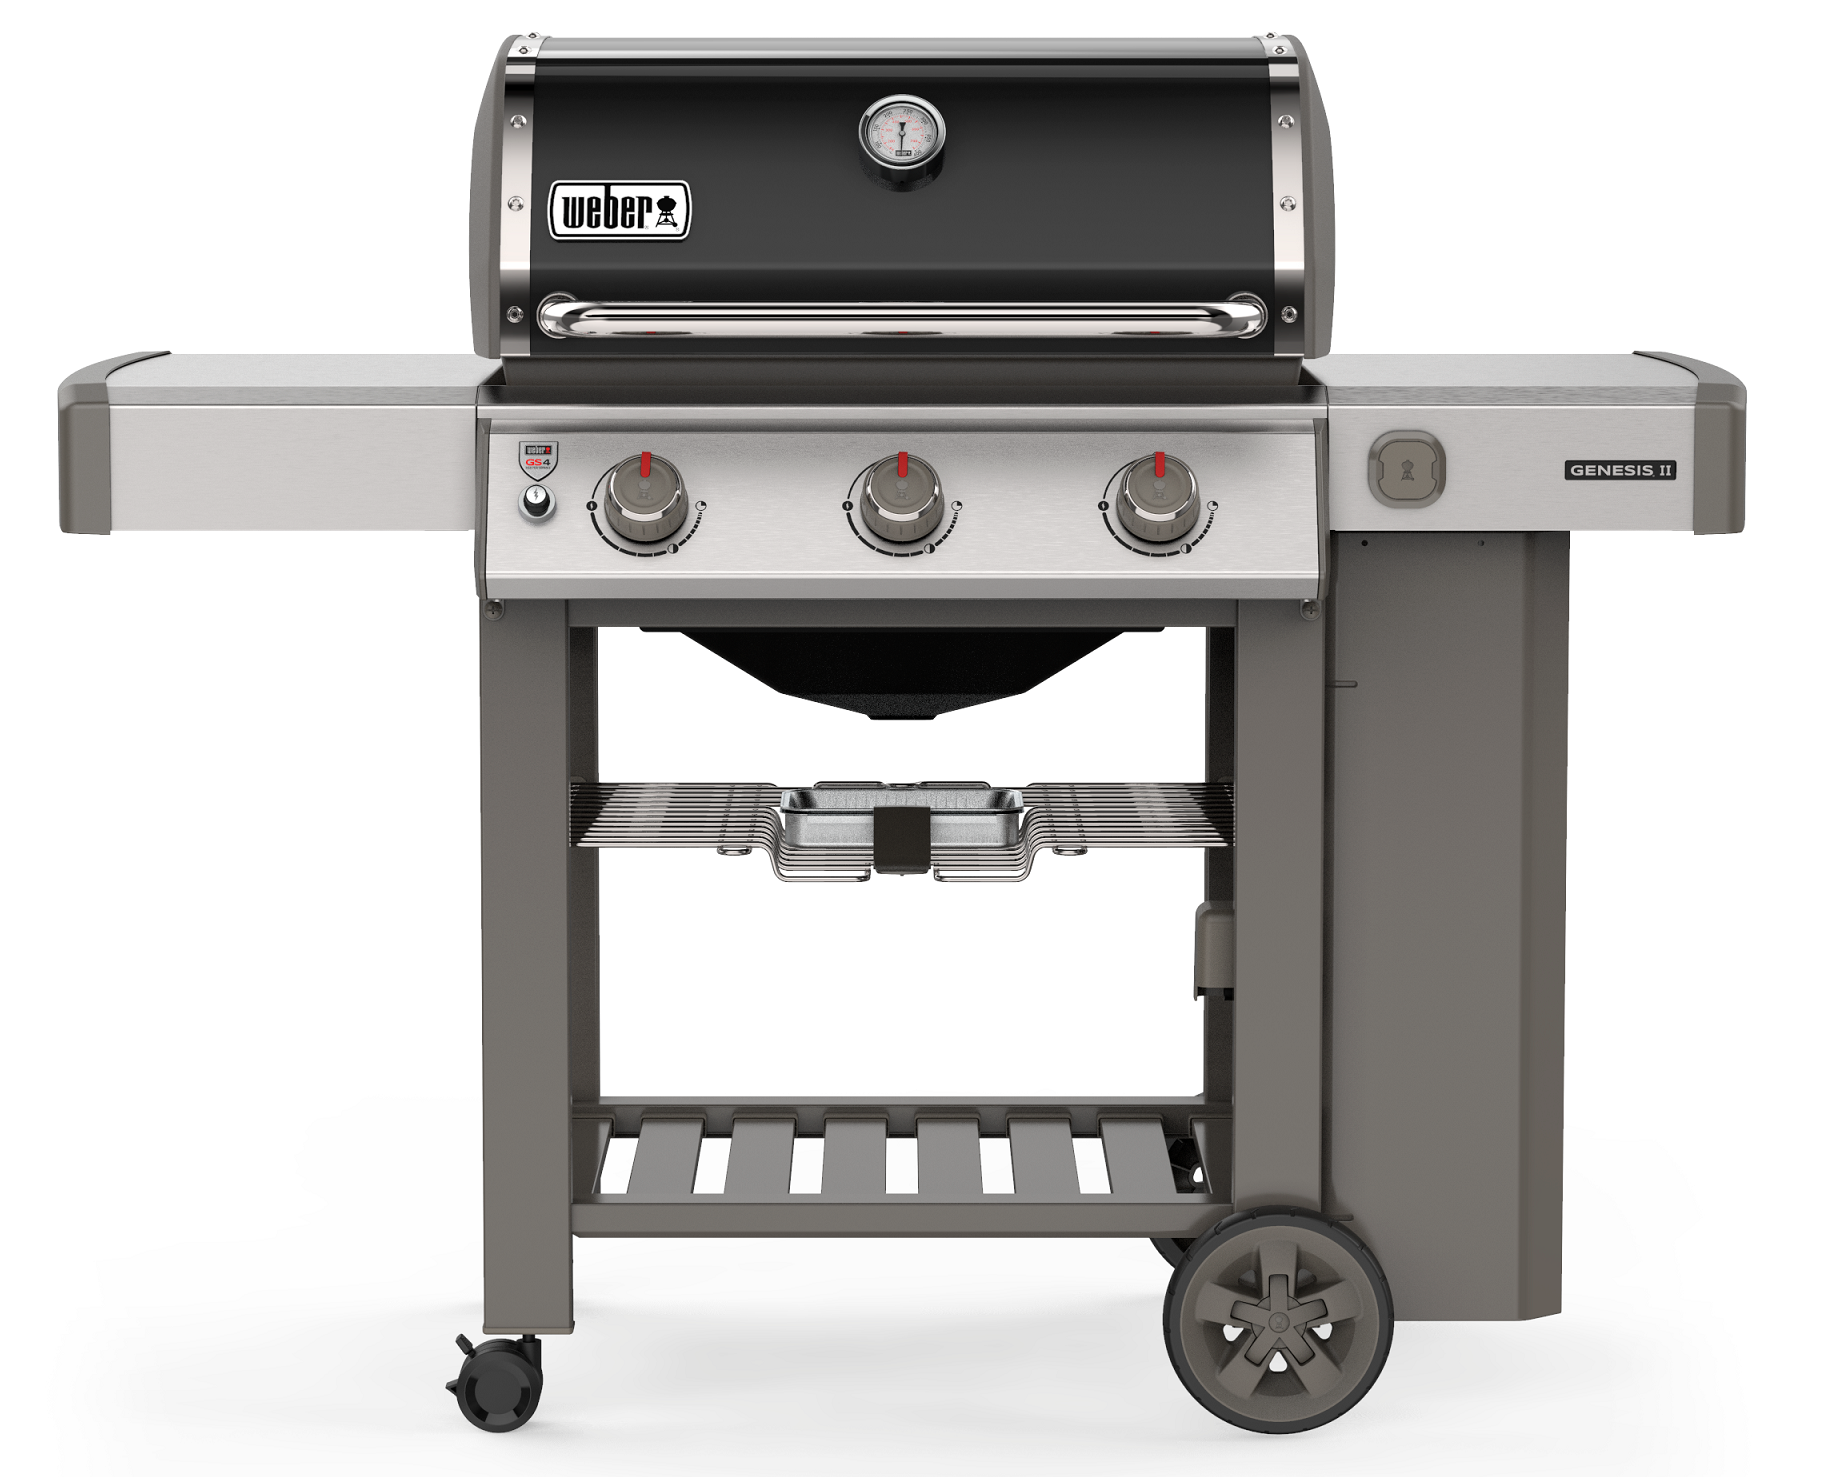 Weber Holzkohlegrill Bedienung : Weber holzkohlegrill grill anleitung anleitung die perfekte pizza